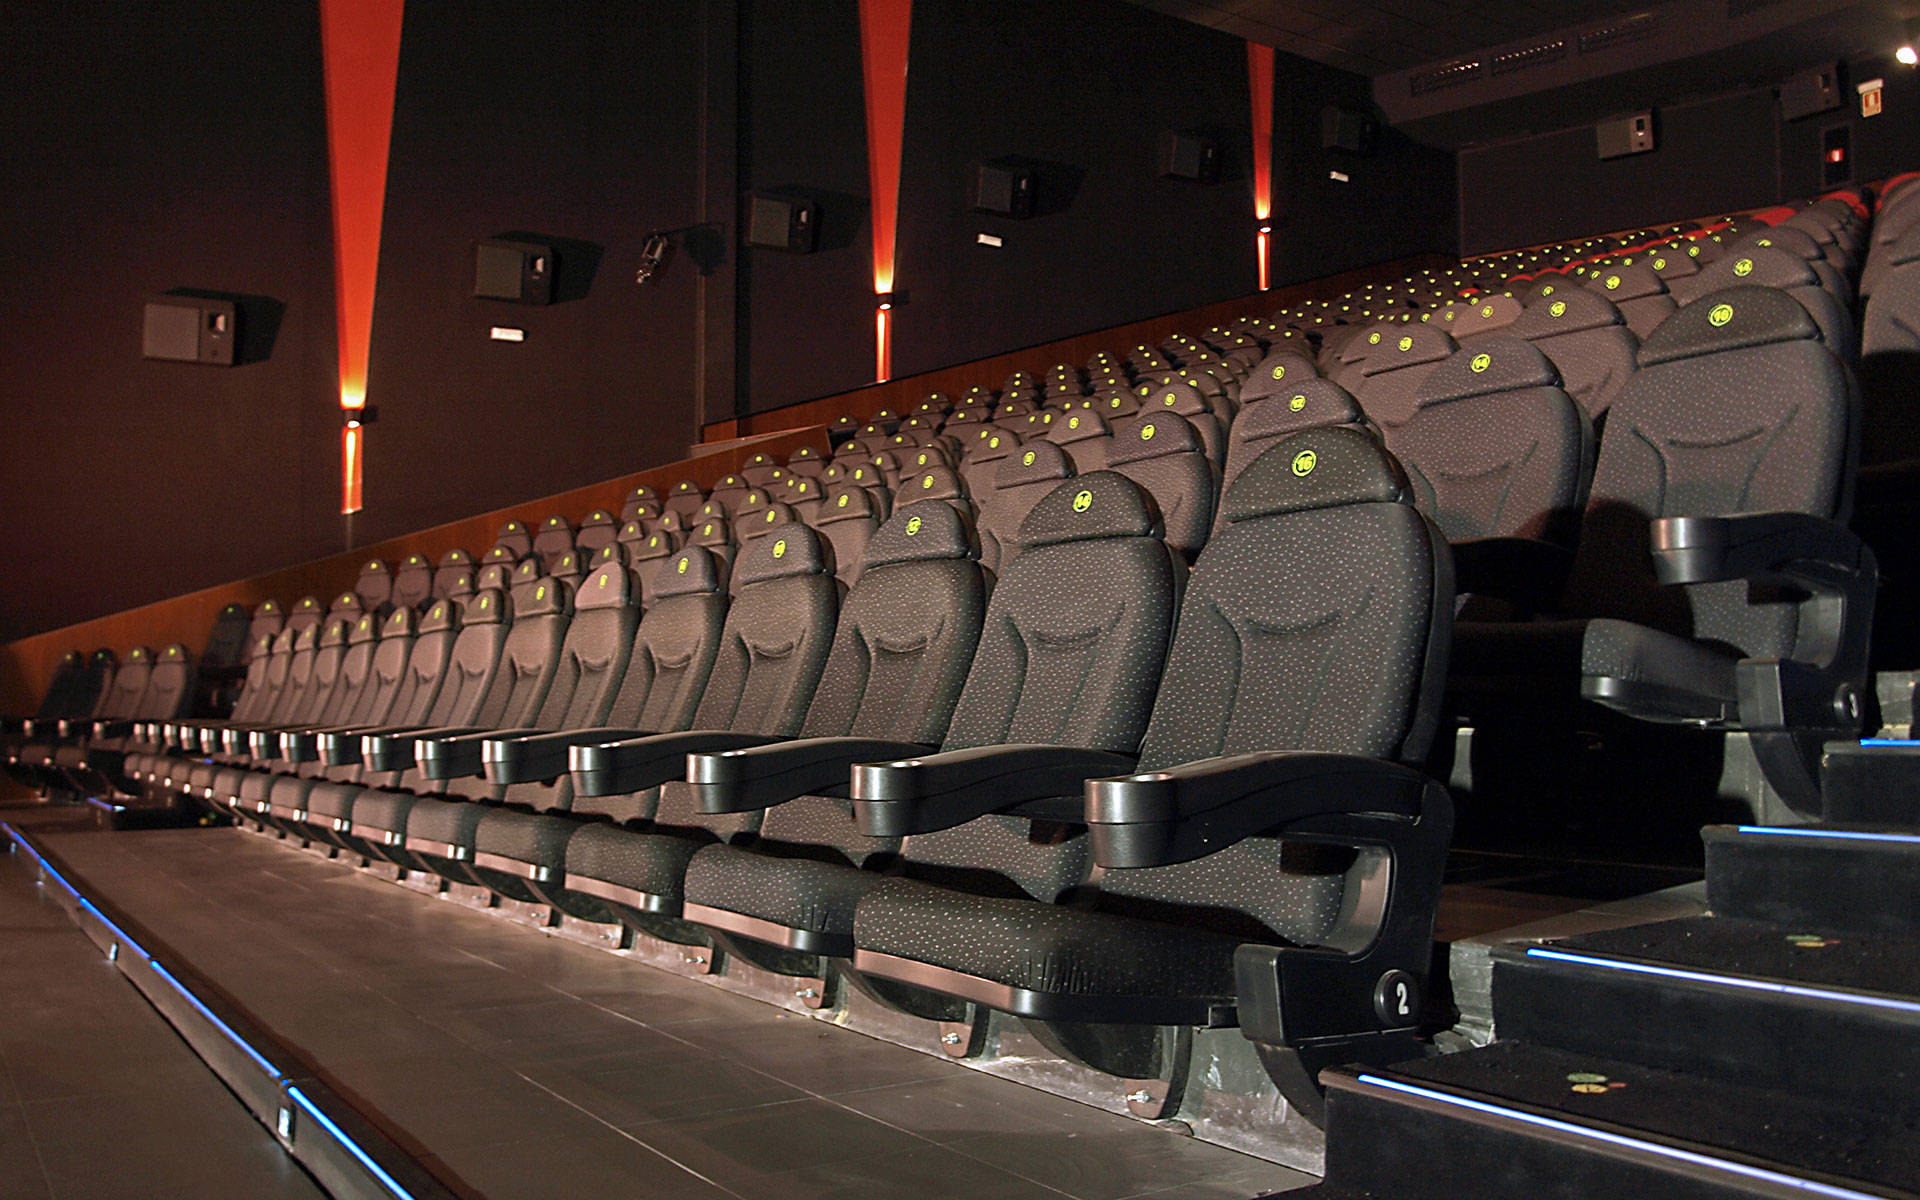 ideal yelmo cineplex: